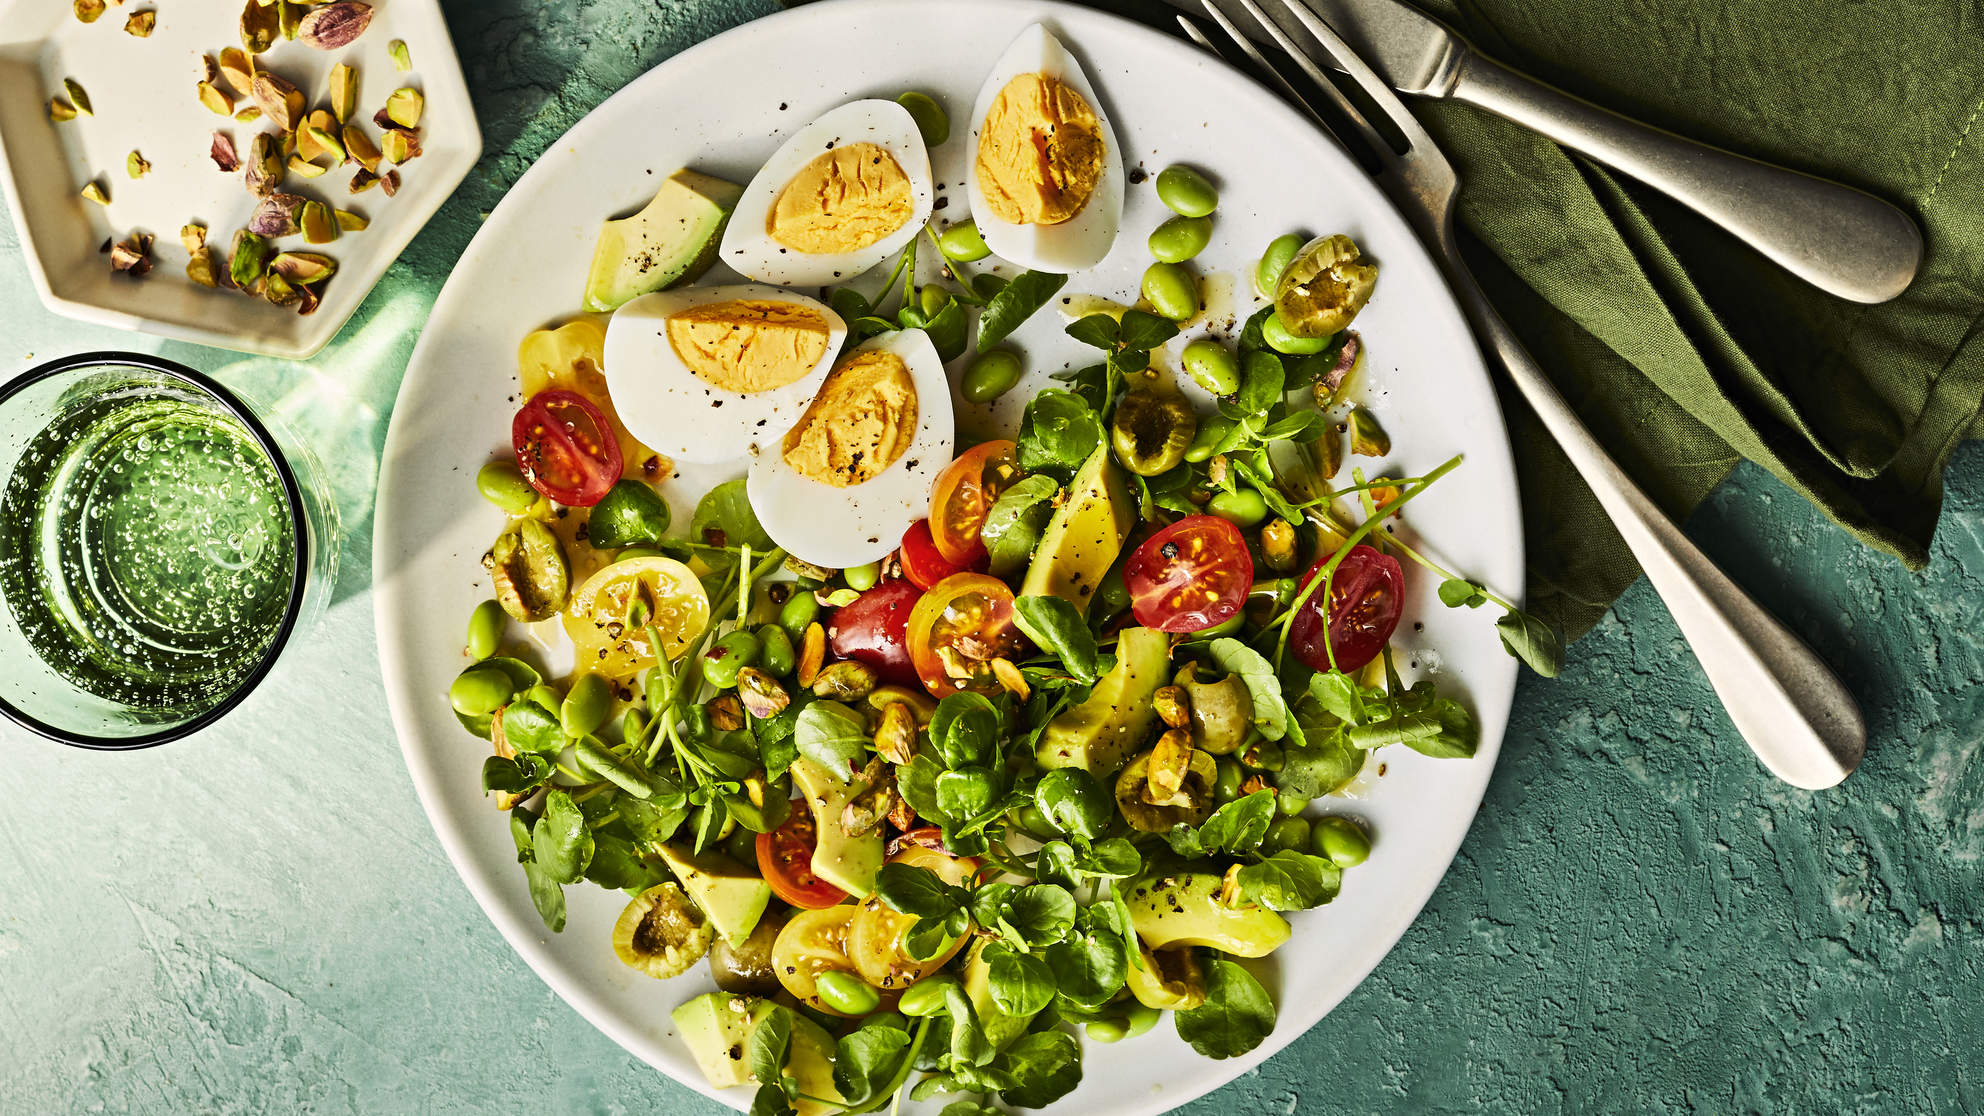 Avocado and Watercress Salad